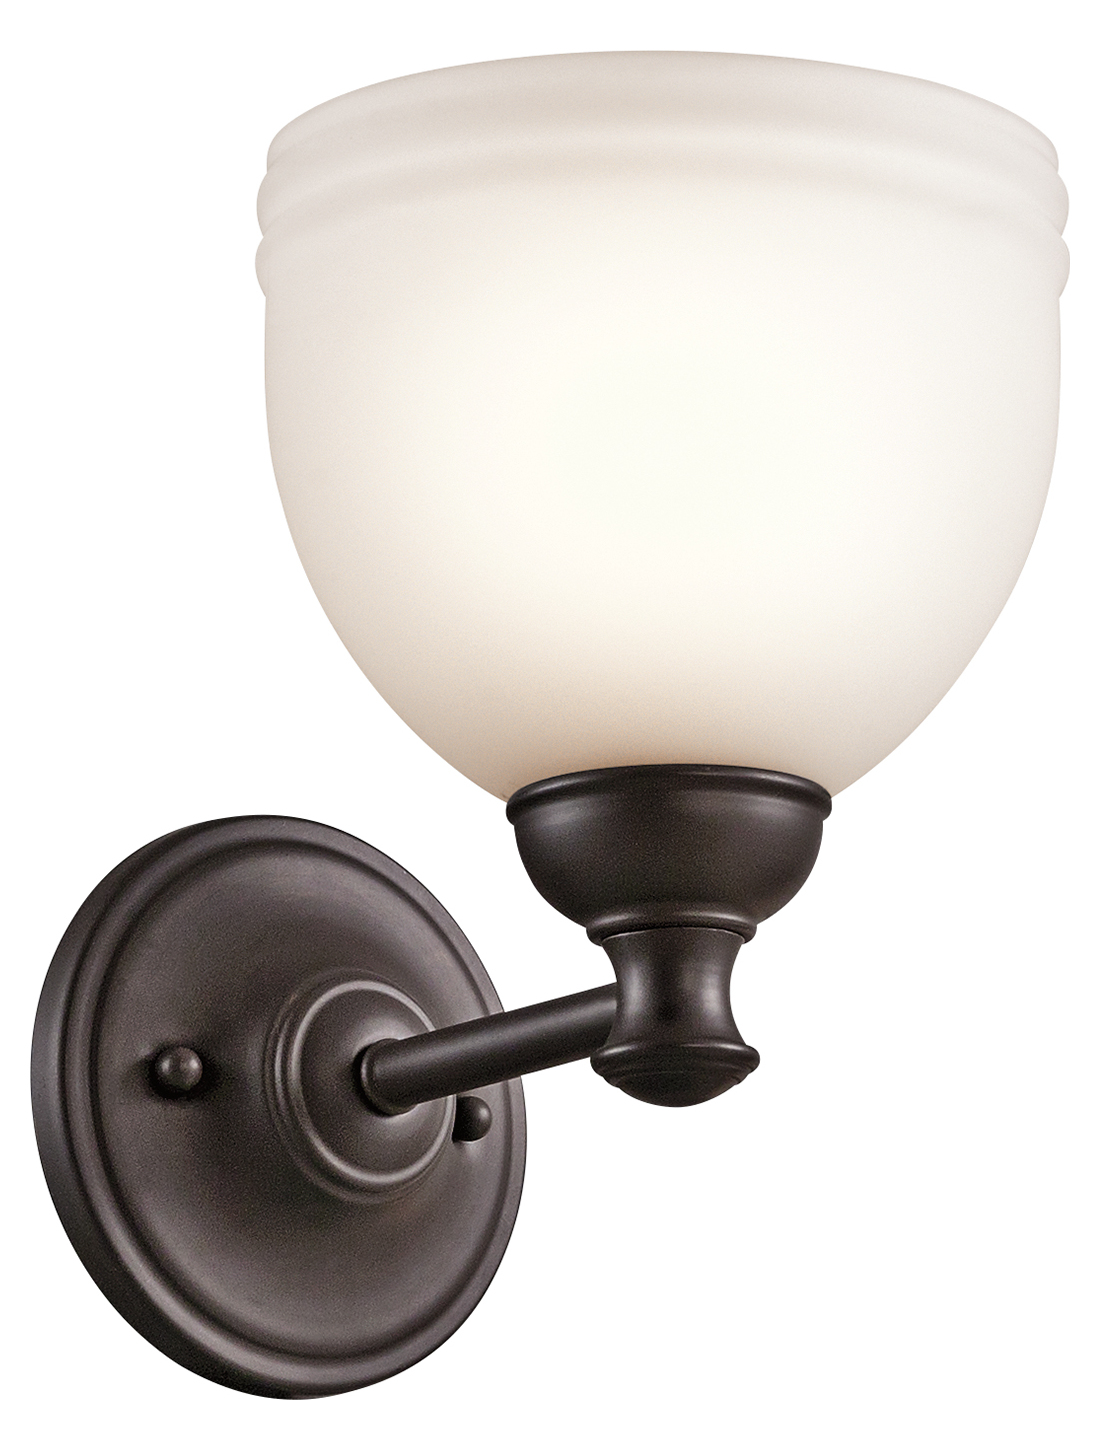 Kichler Wall Sconce 1Lt Oil Rubbed Bronze 45611ORZ From